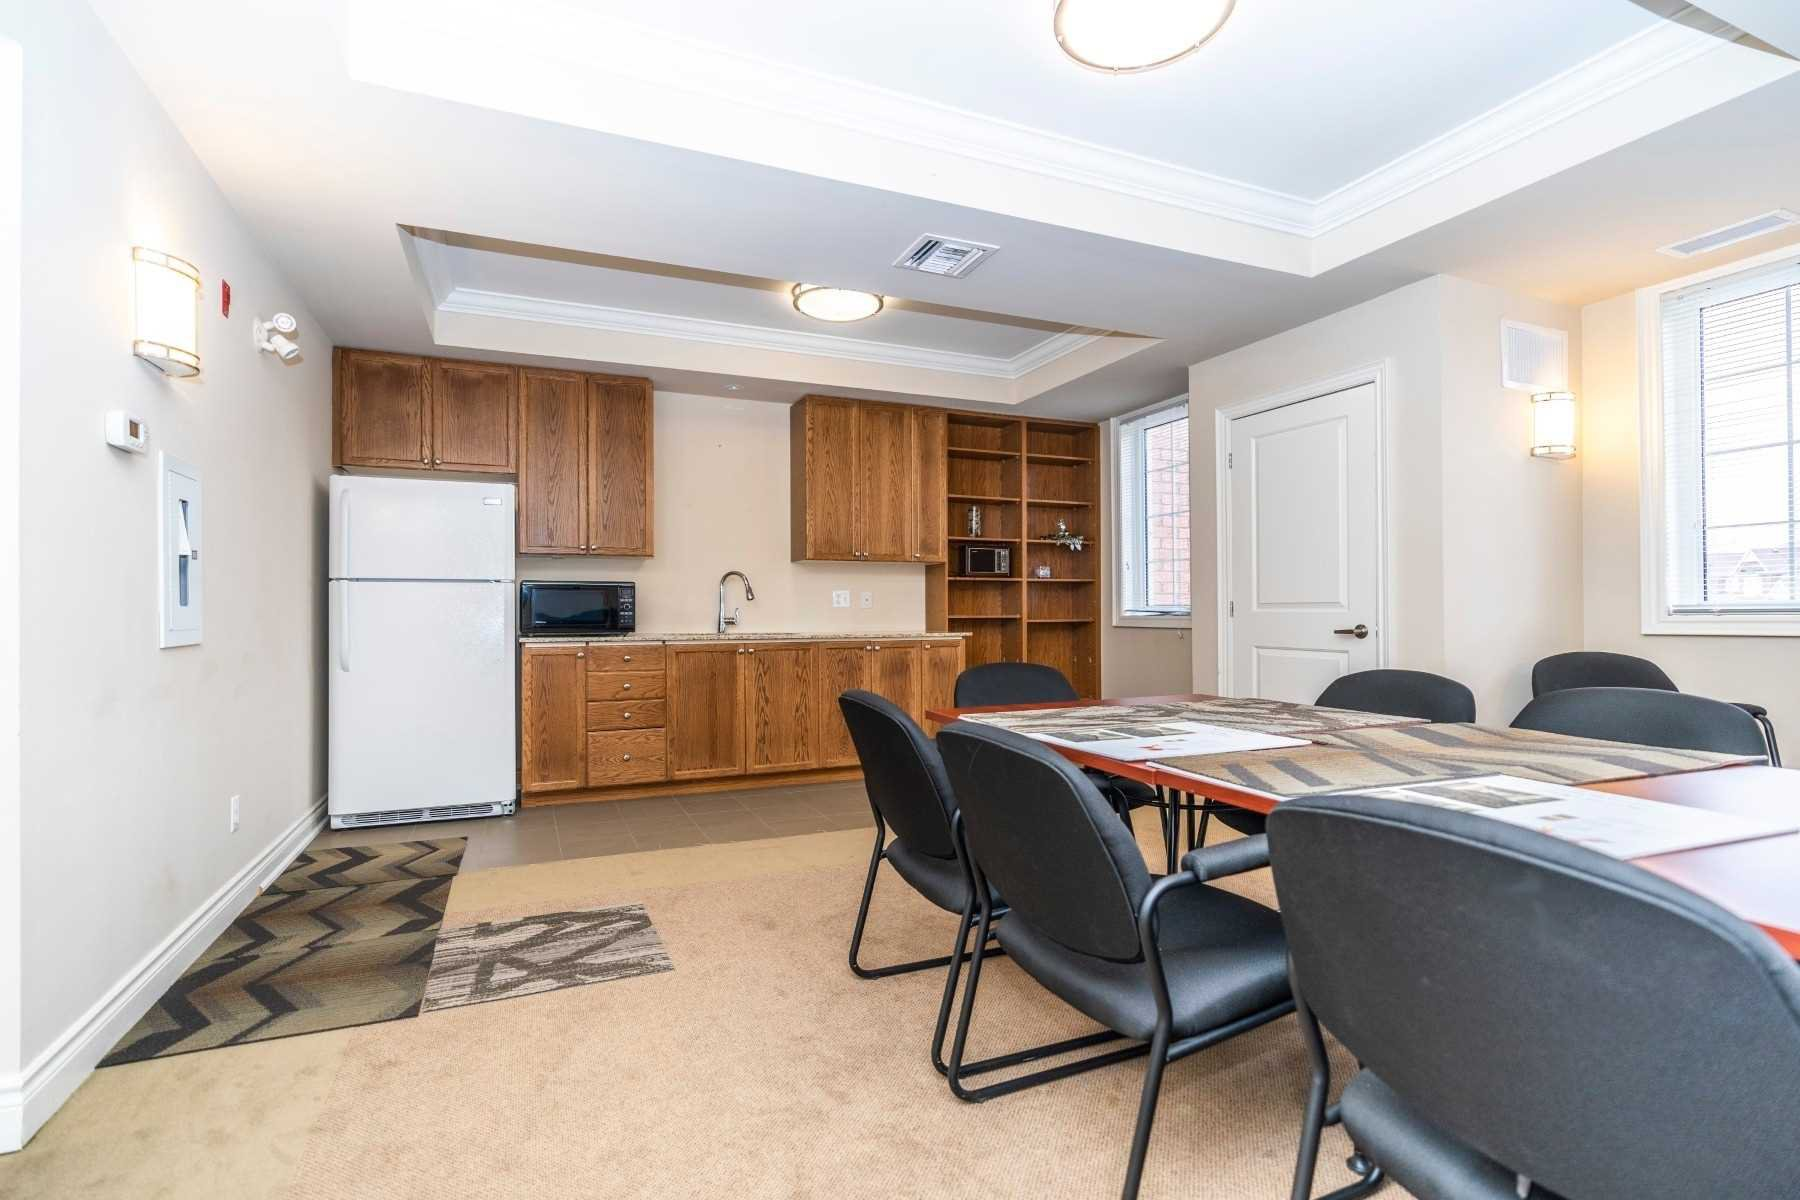 Photo 15: Photos: 213 54 Harvey Johnston Way in Whitby: Brooklin Condo for sale : MLS®# E4664368